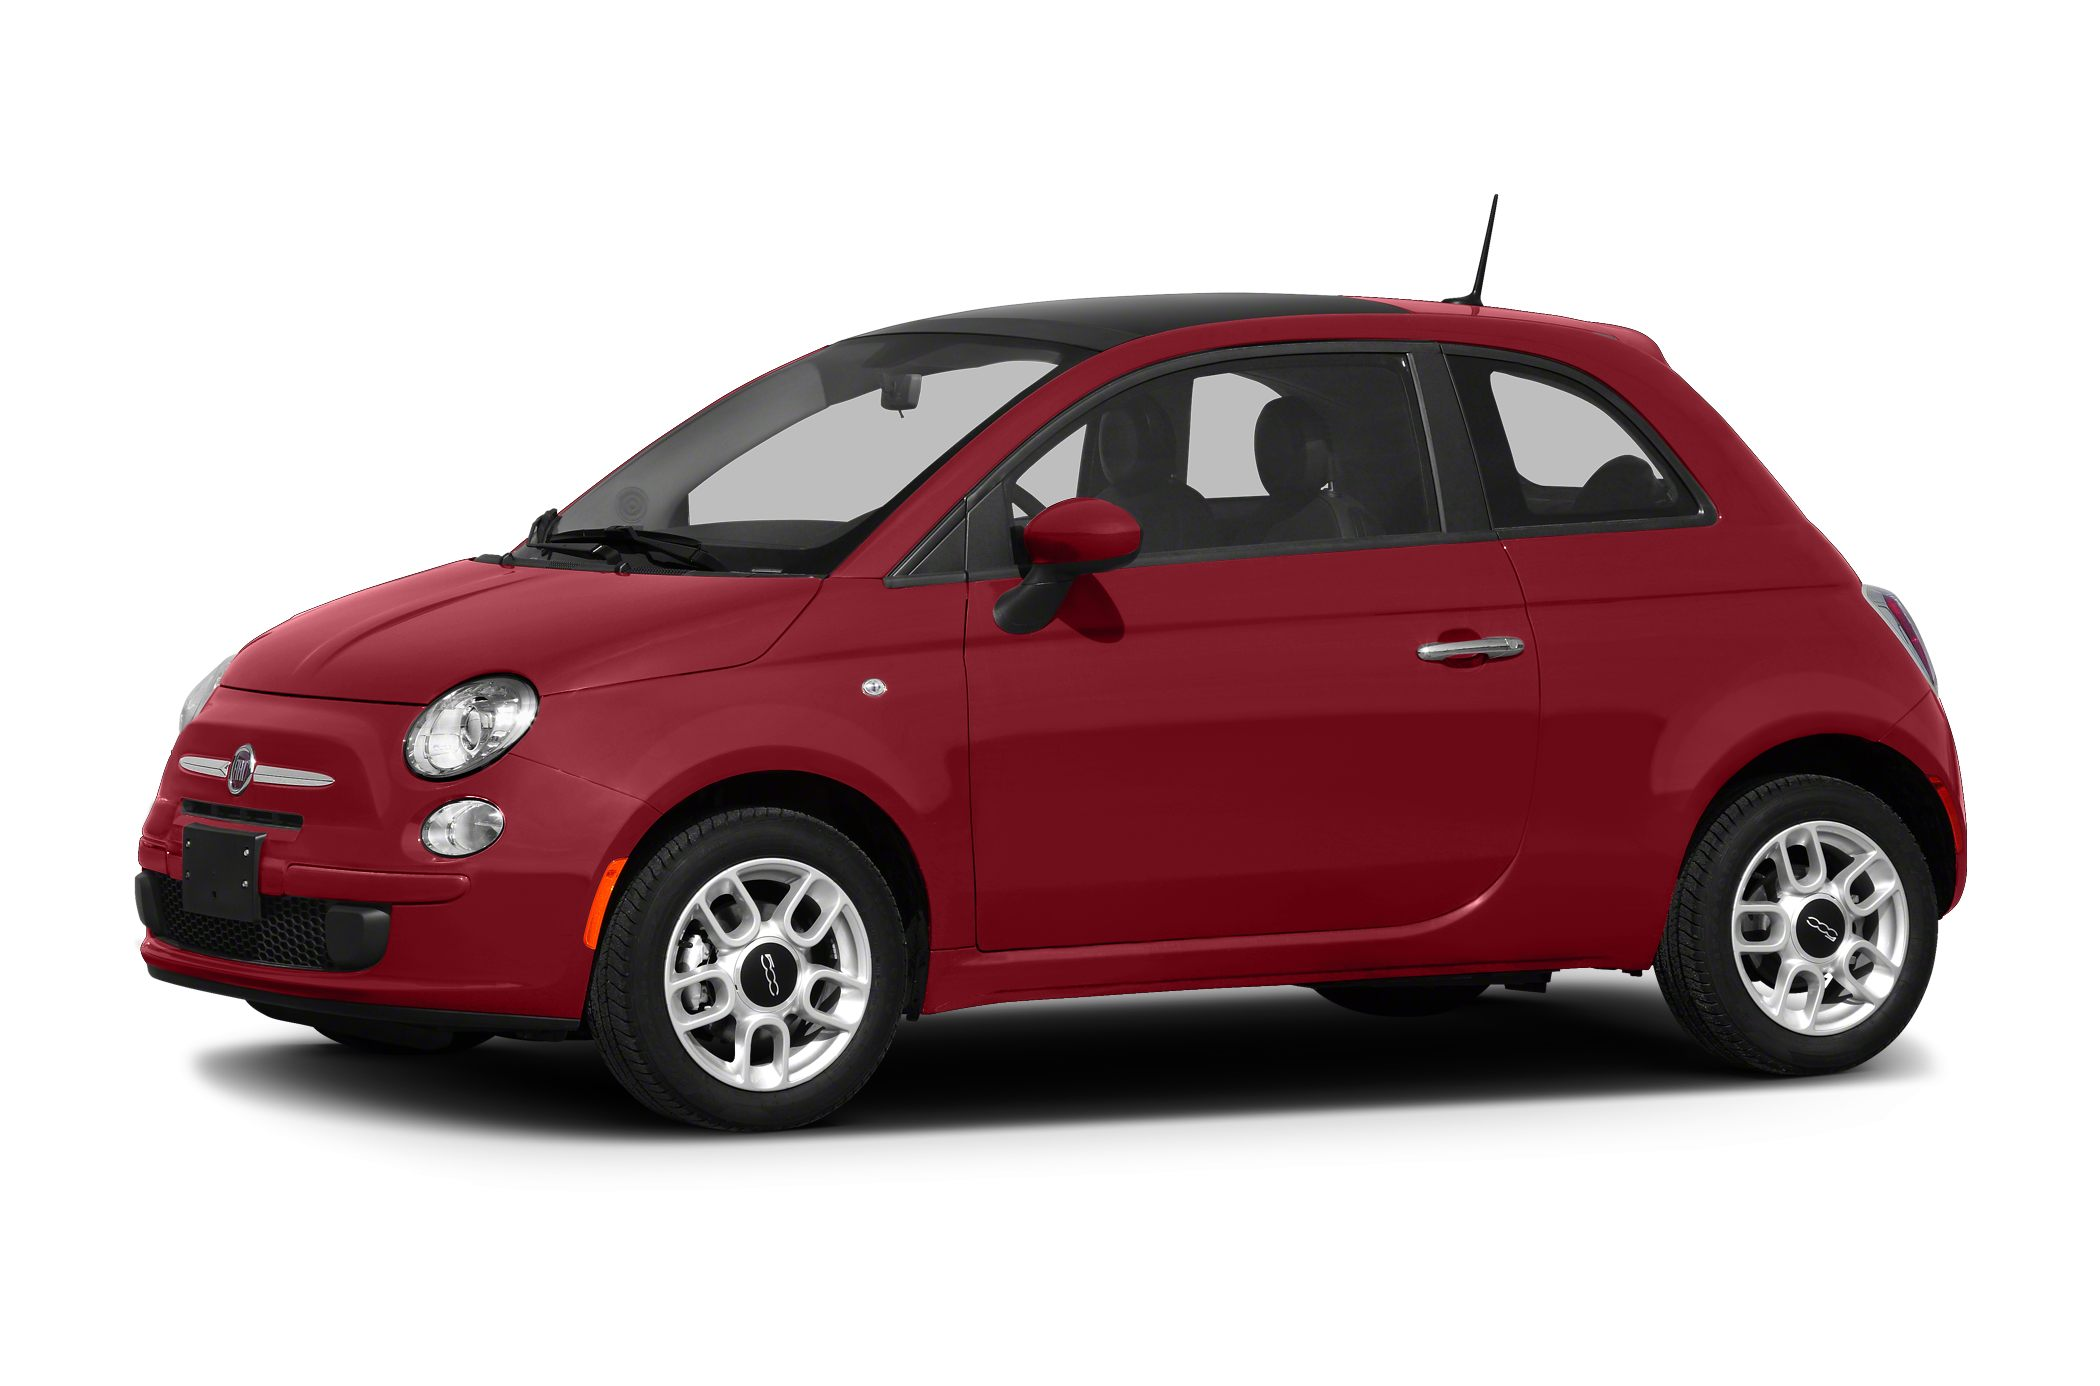 luxury cars for sale near me fiat 500 used cars. Black Bedroom Furniture Sets. Home Design Ideas